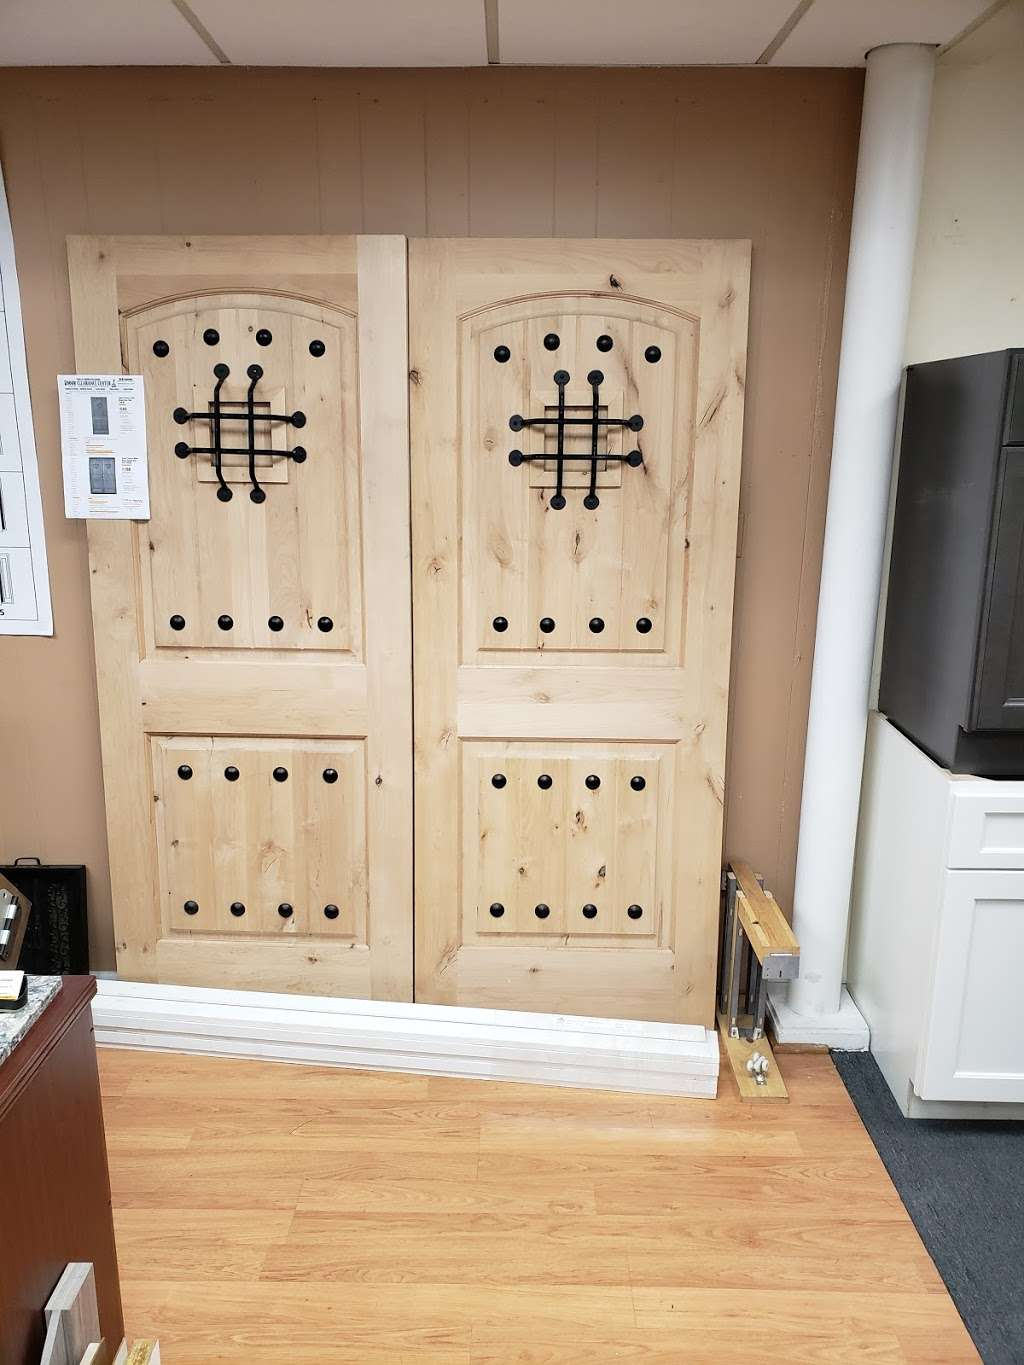 Door Clearance Center - furniture store  | Photo 7 of 10 | Address: 8245 North Fwy, Houston, TX 77037, USA | Phone: (713) 937-9132